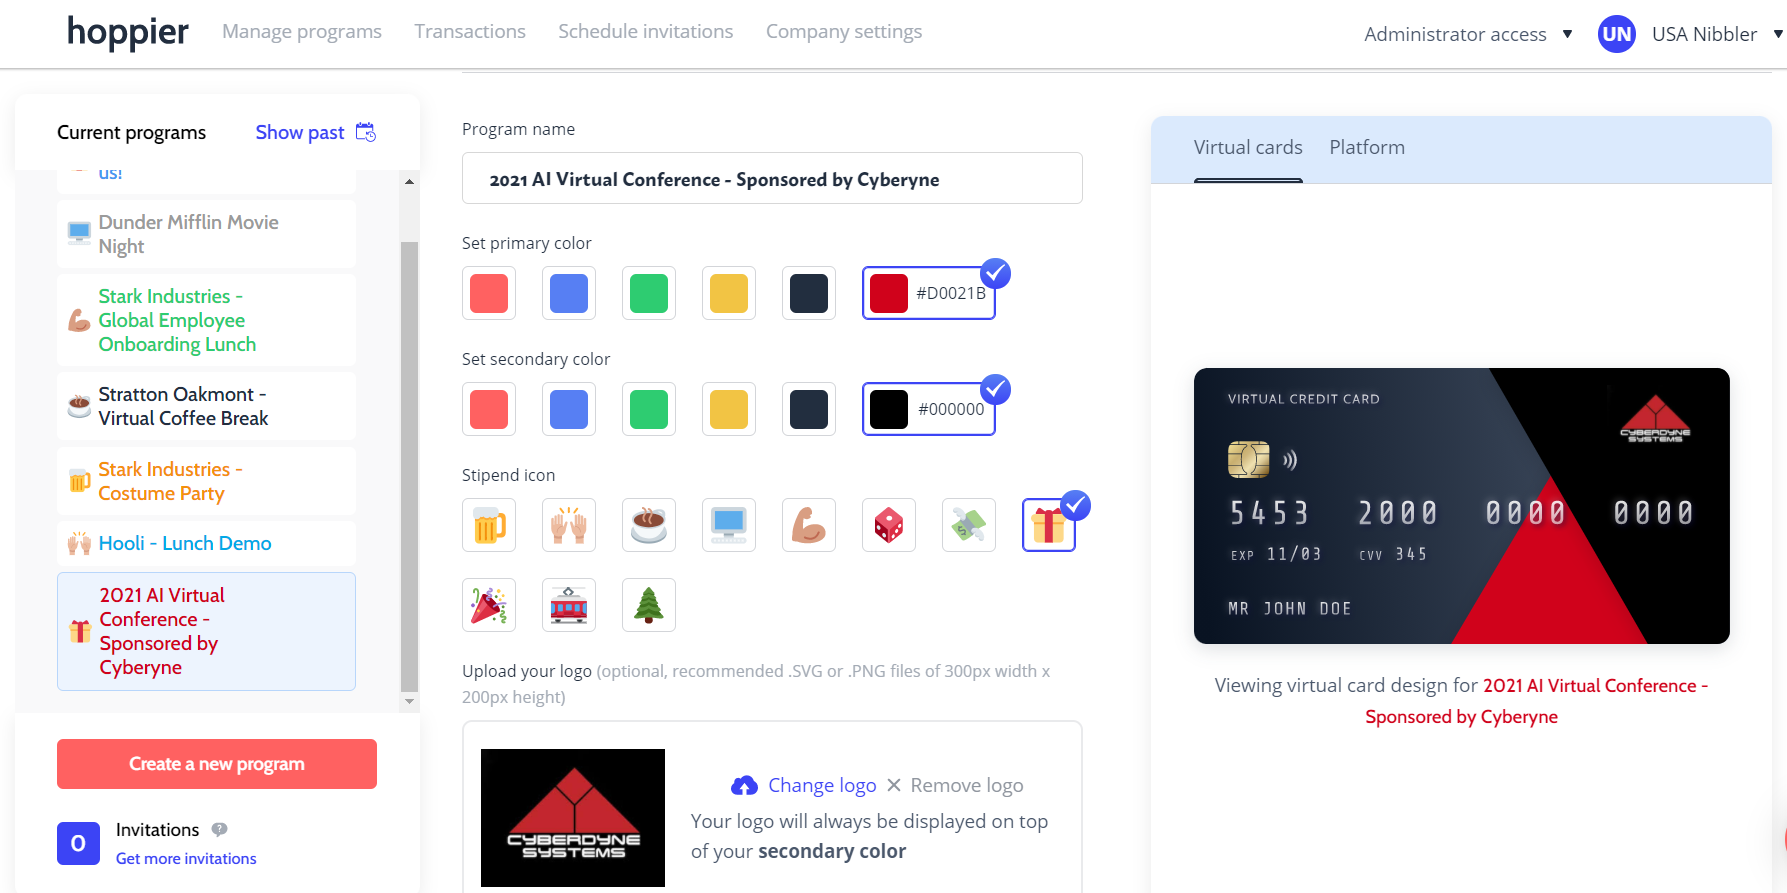 A virtual credit card that serves as an audience engagement tool